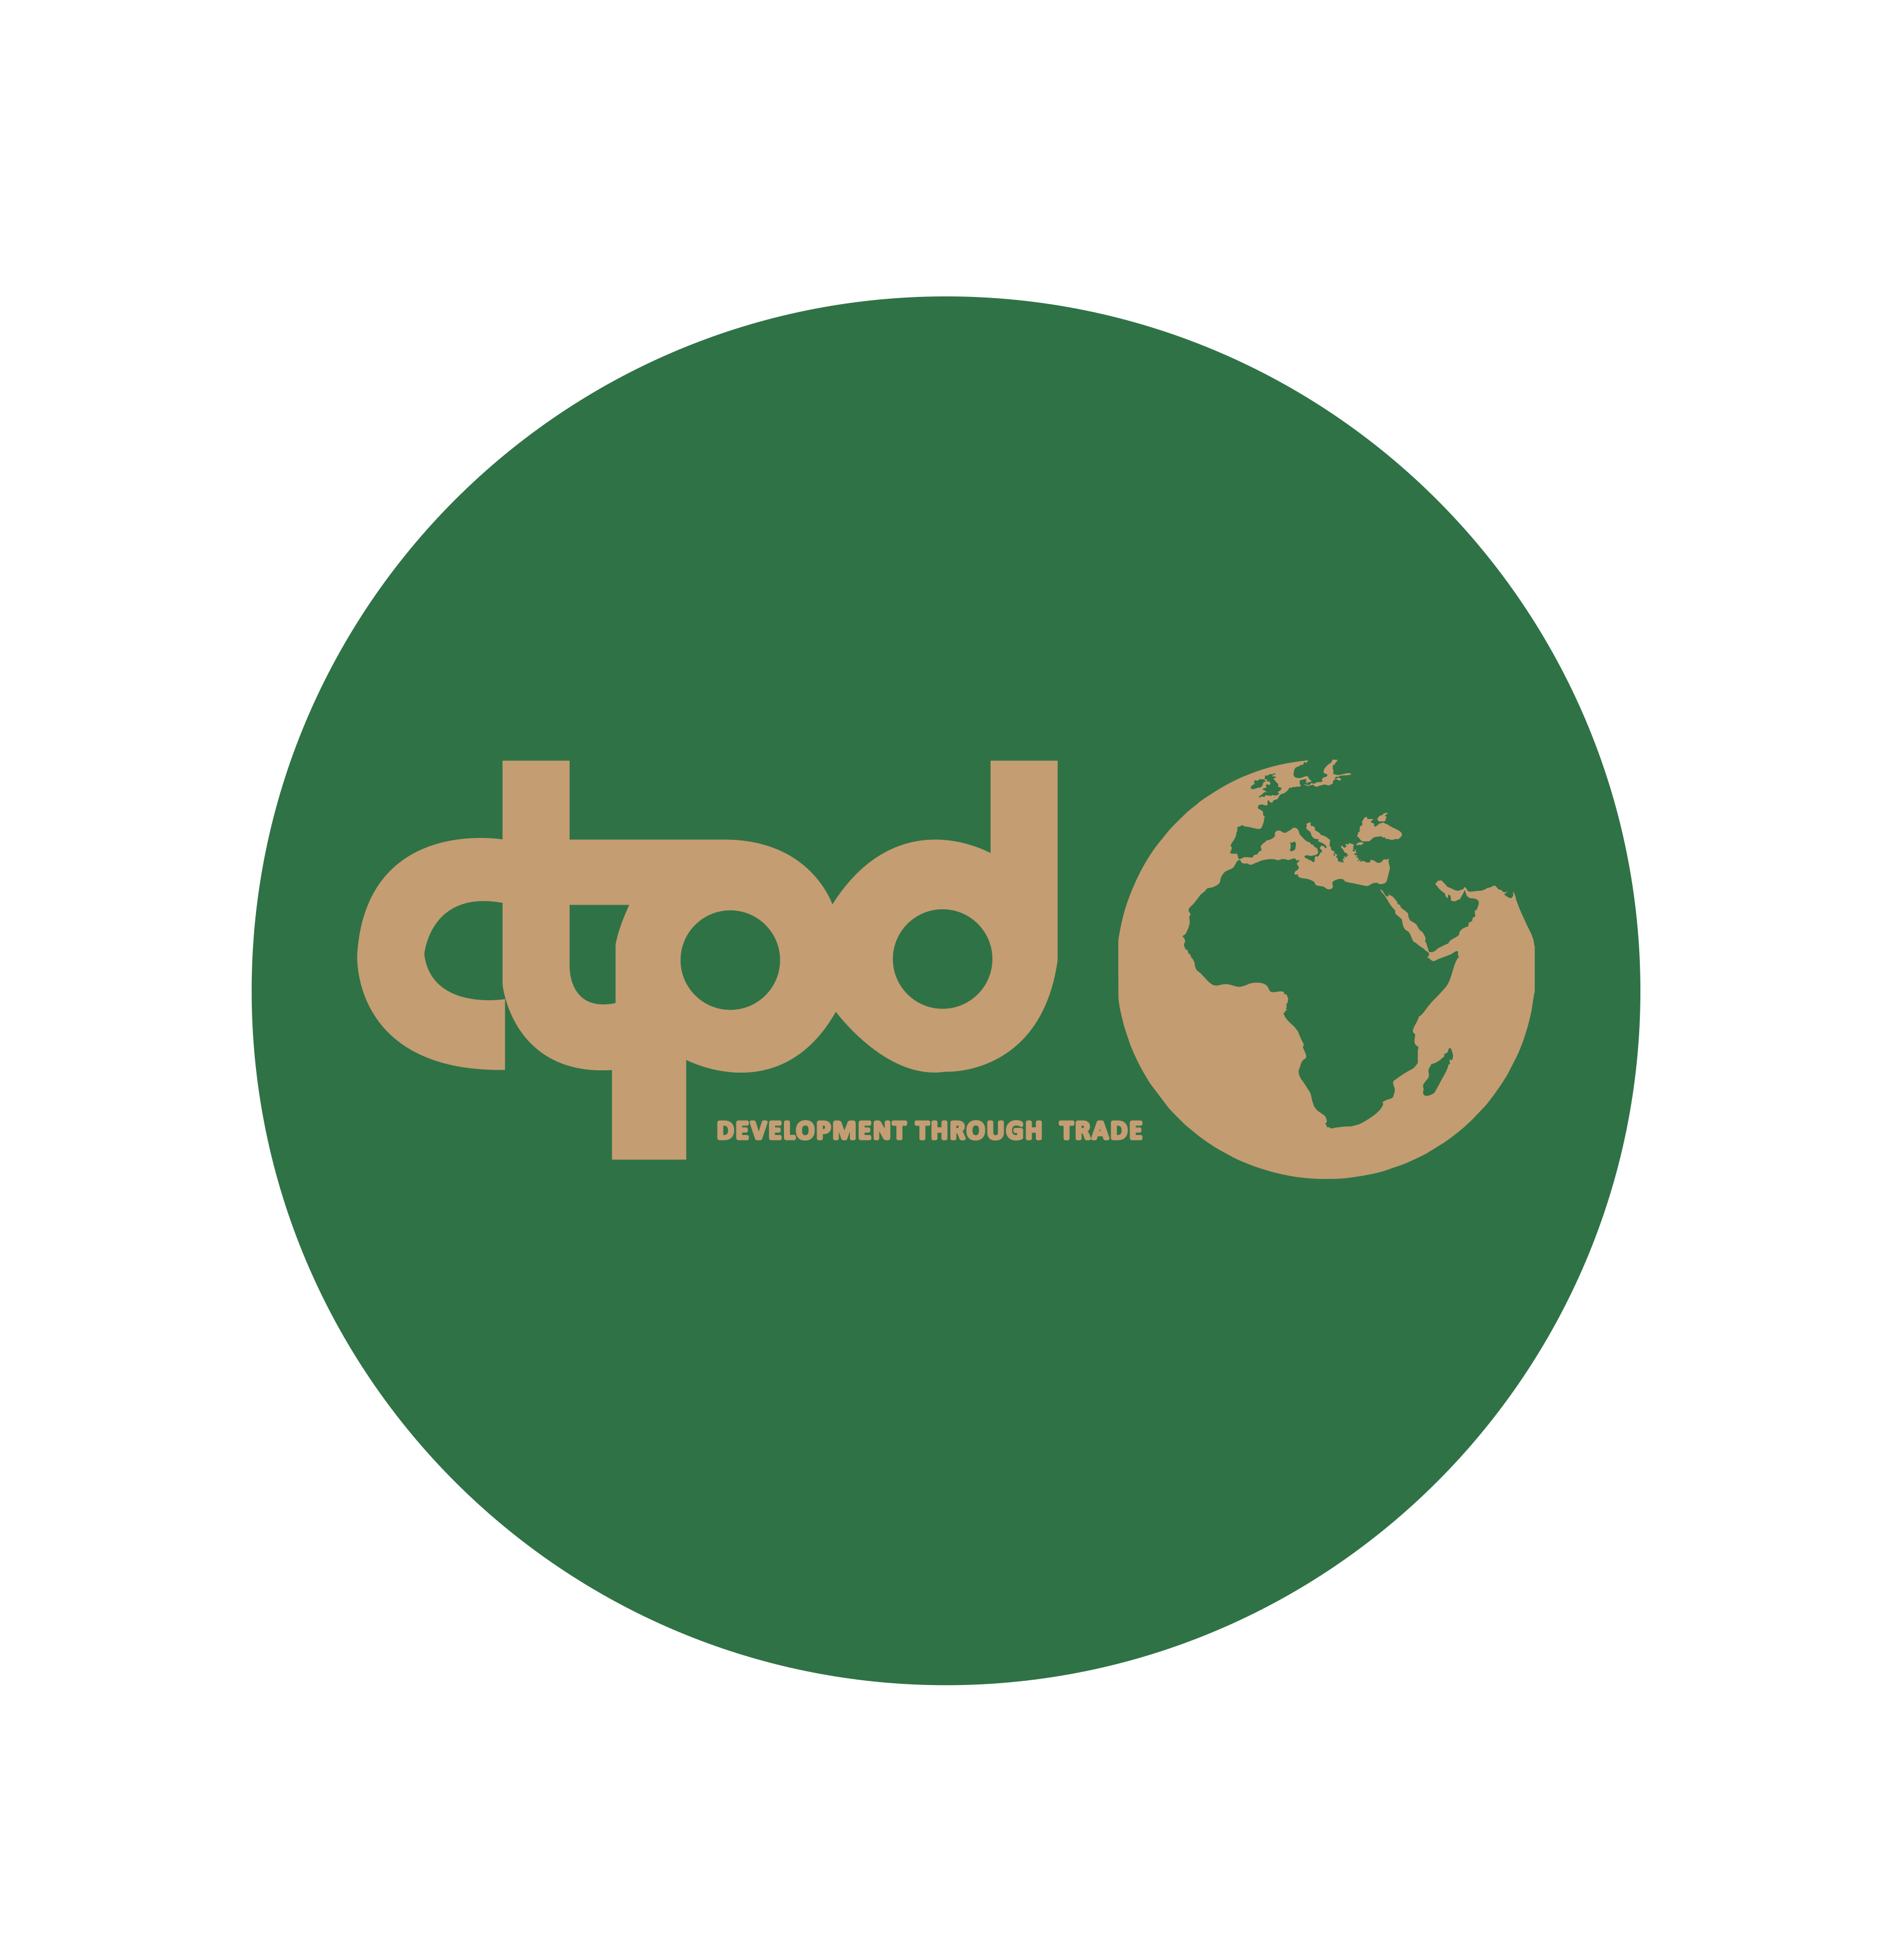 Centre for Trade Policy & Development-CTPD